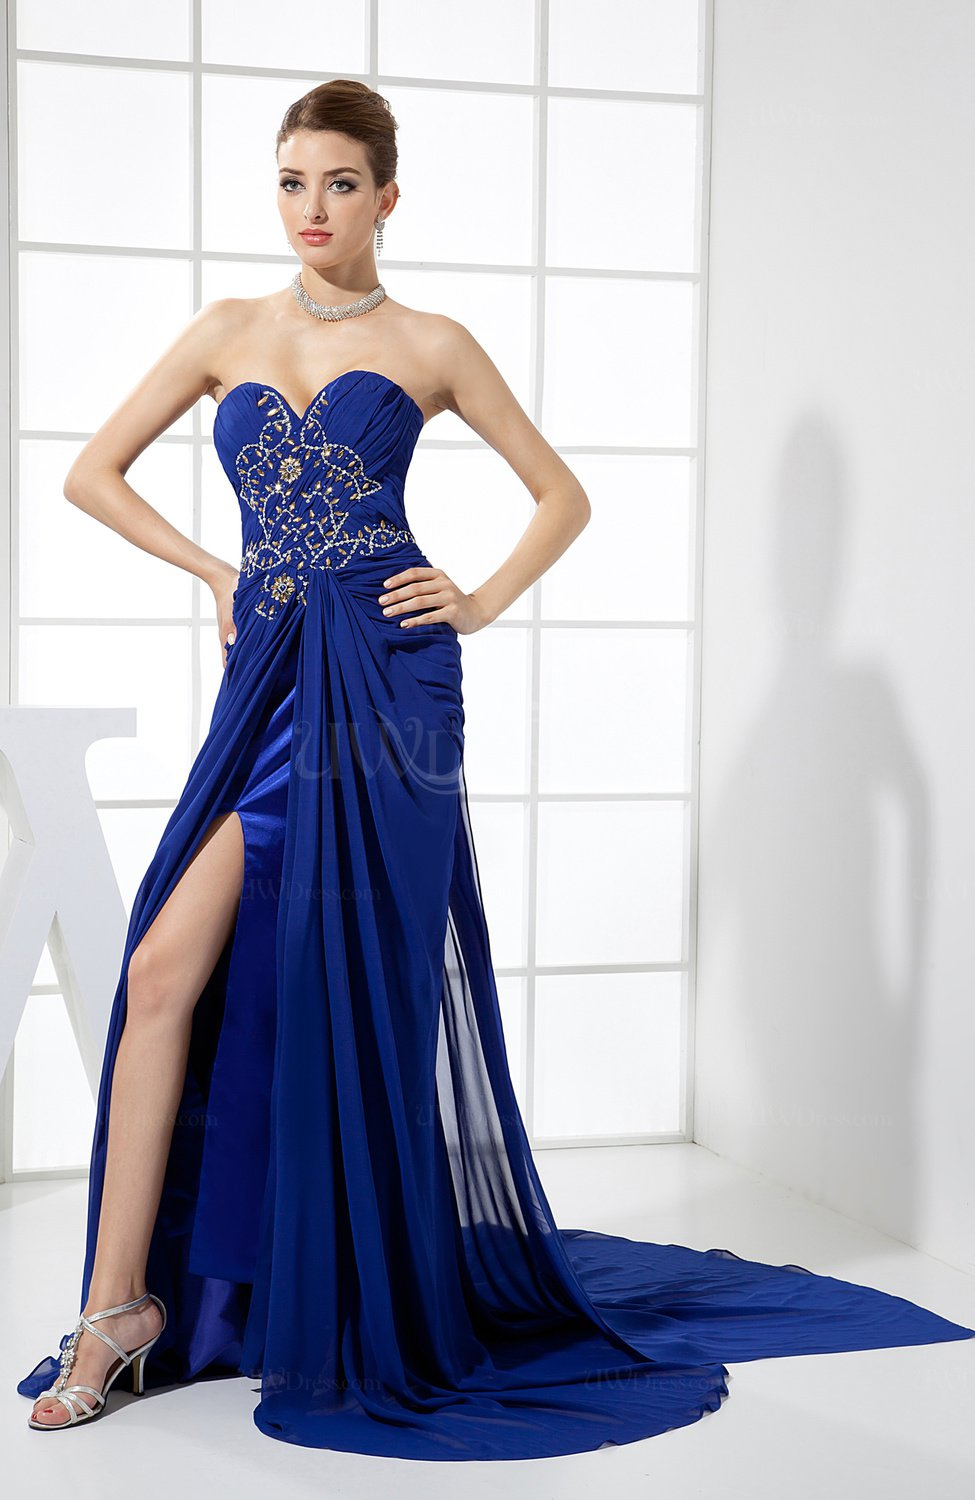 Electric Blue Prom Dress